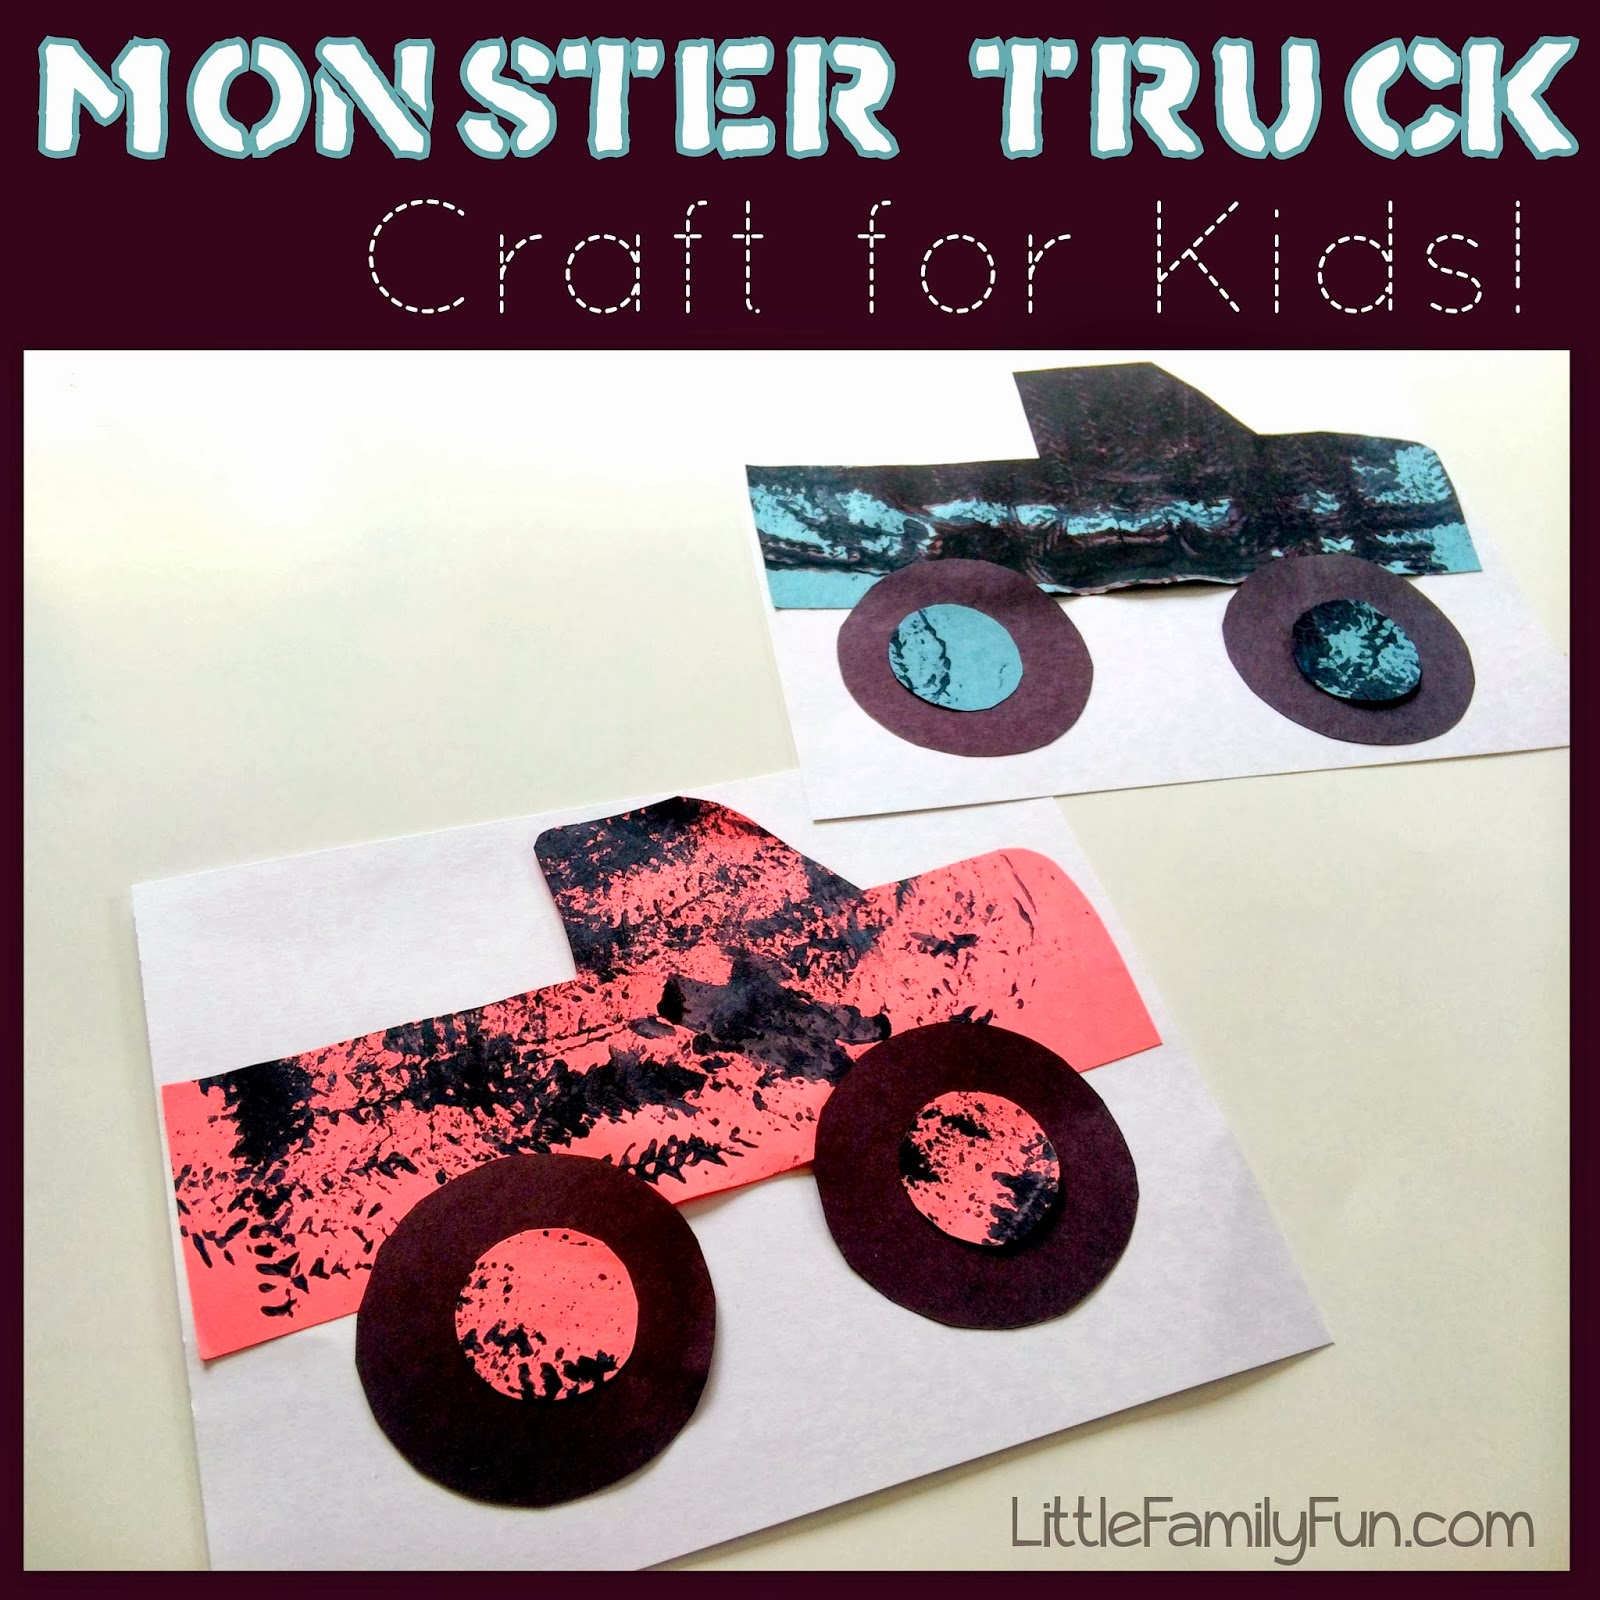 http://www.littlefamilyfun.com/2014/01/monster-truck-craft.html